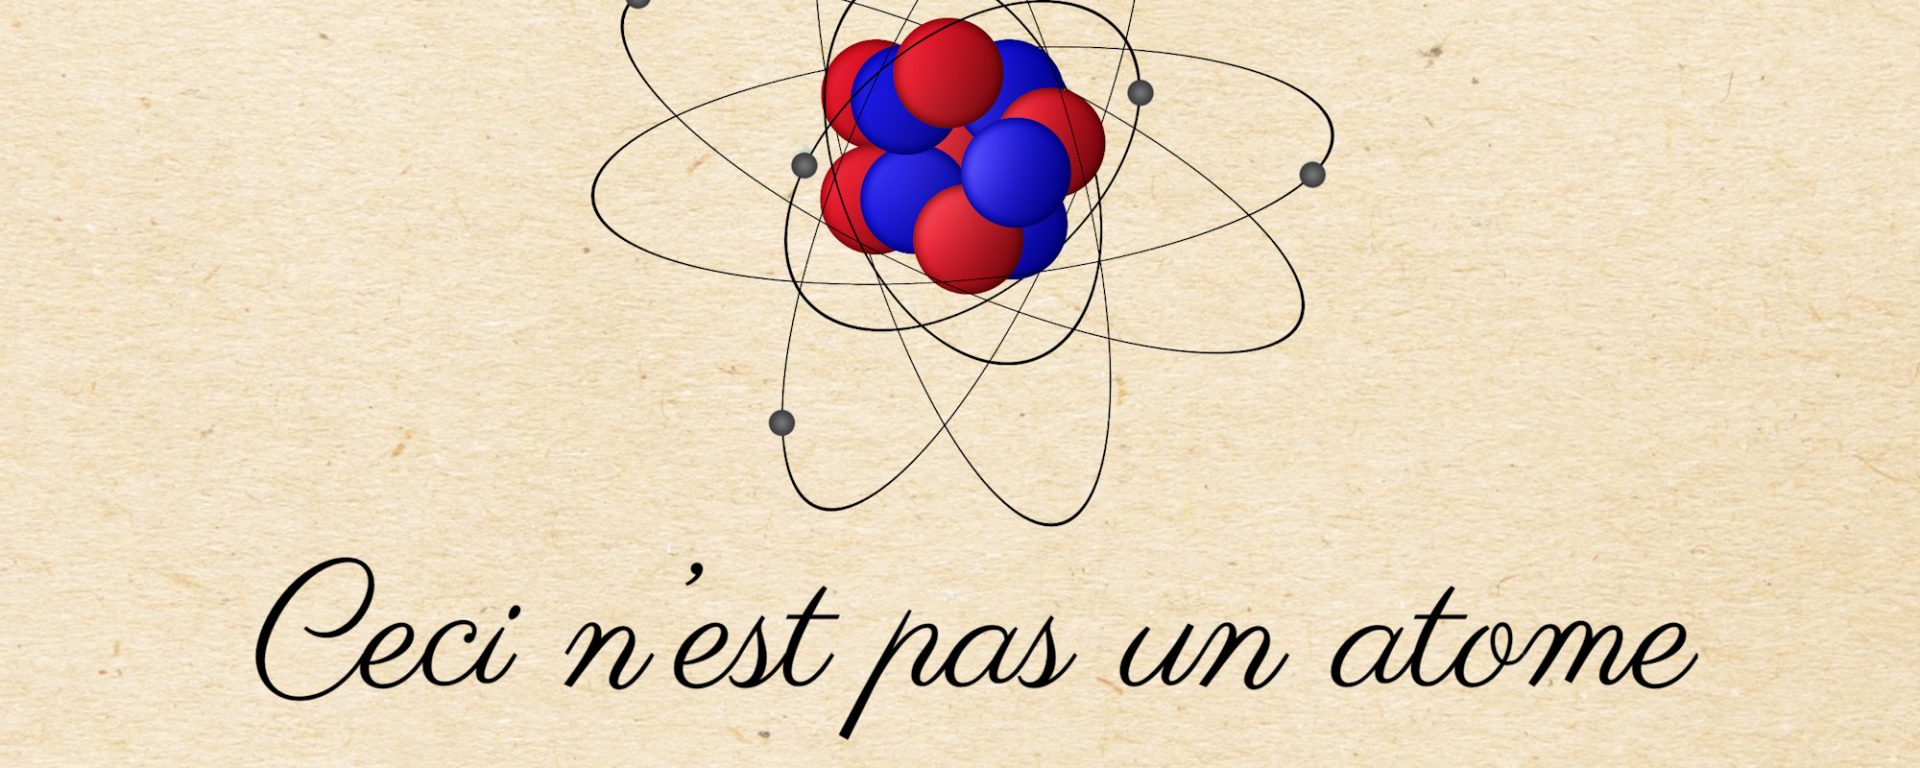 A classical image of an atom is portrayed with an electron whizzing around the nucleus. They are all portrayed as balls, which is false.